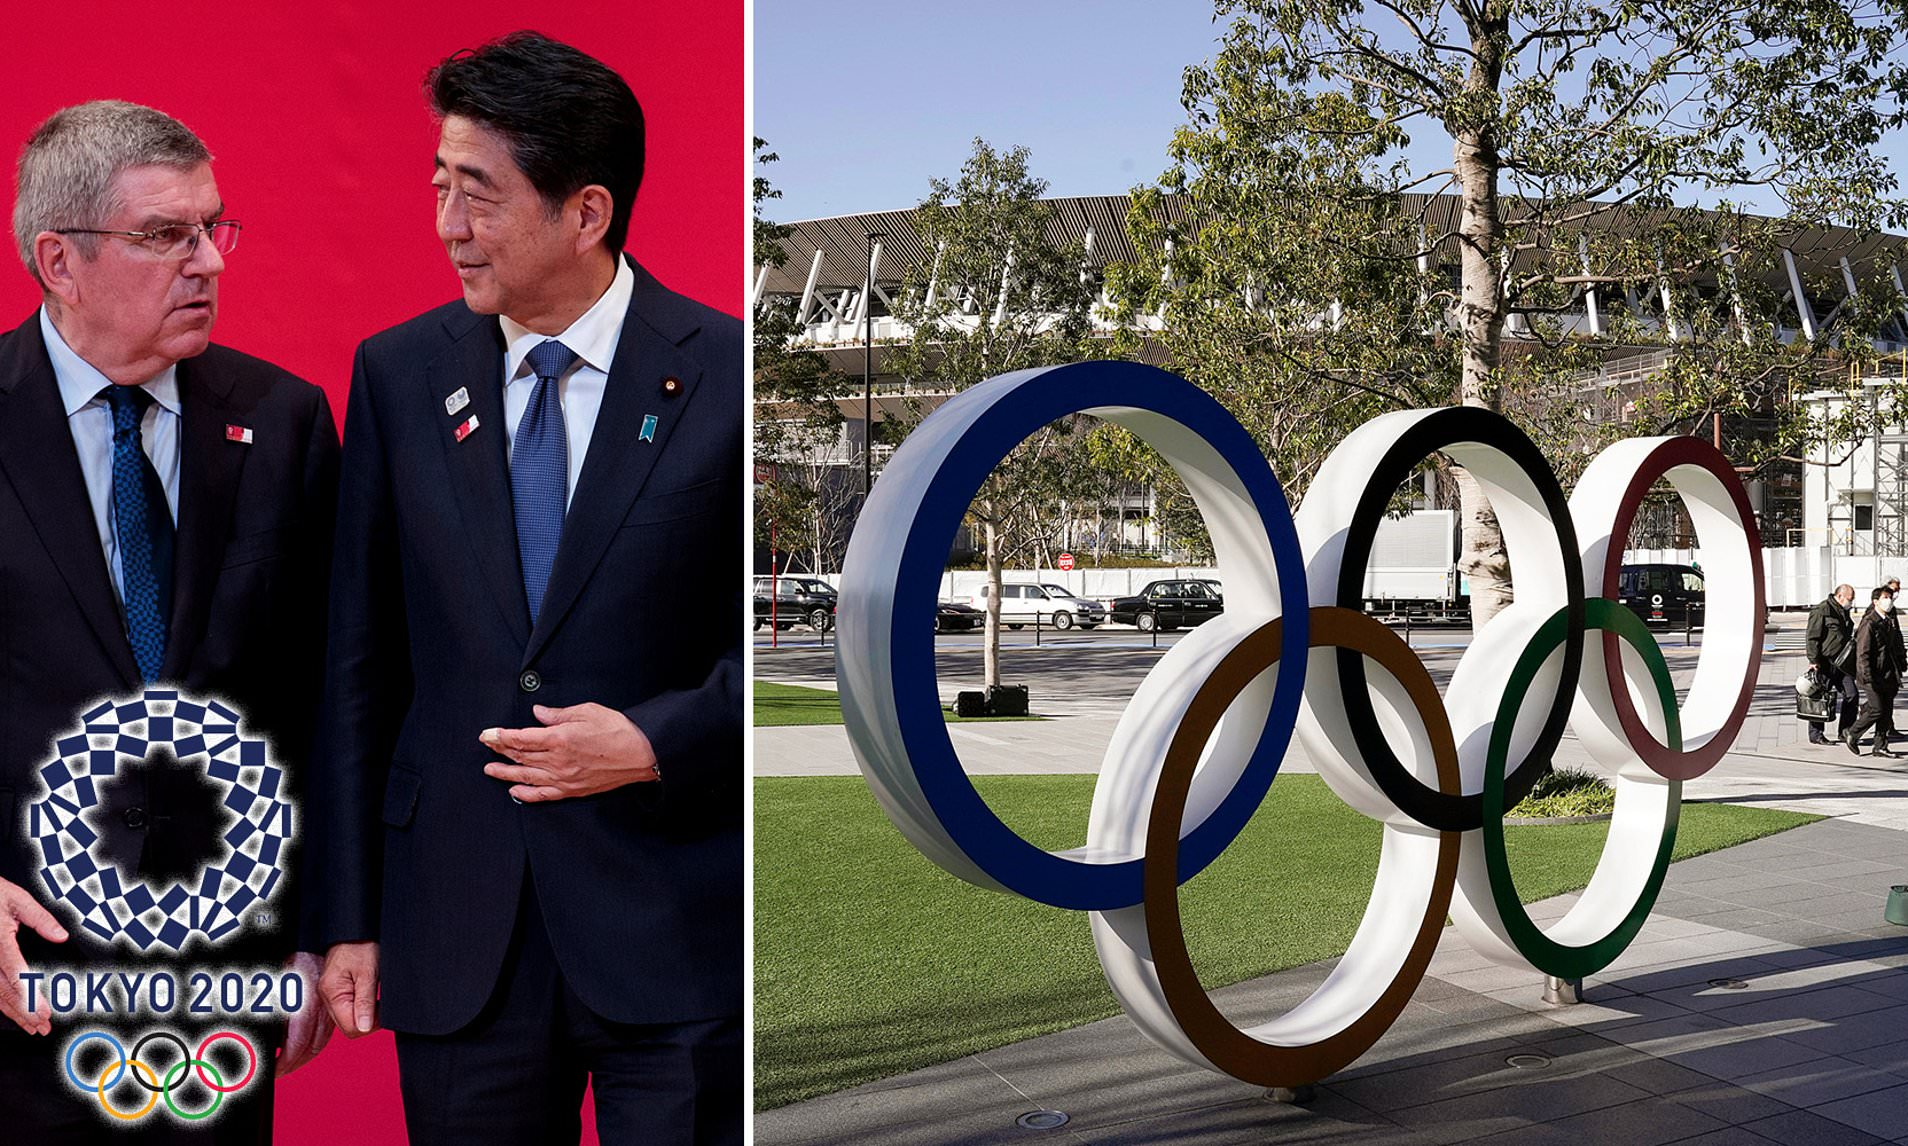 COVID-19 Impact: Tokyo Olympics rescheduled in midsummer 2021